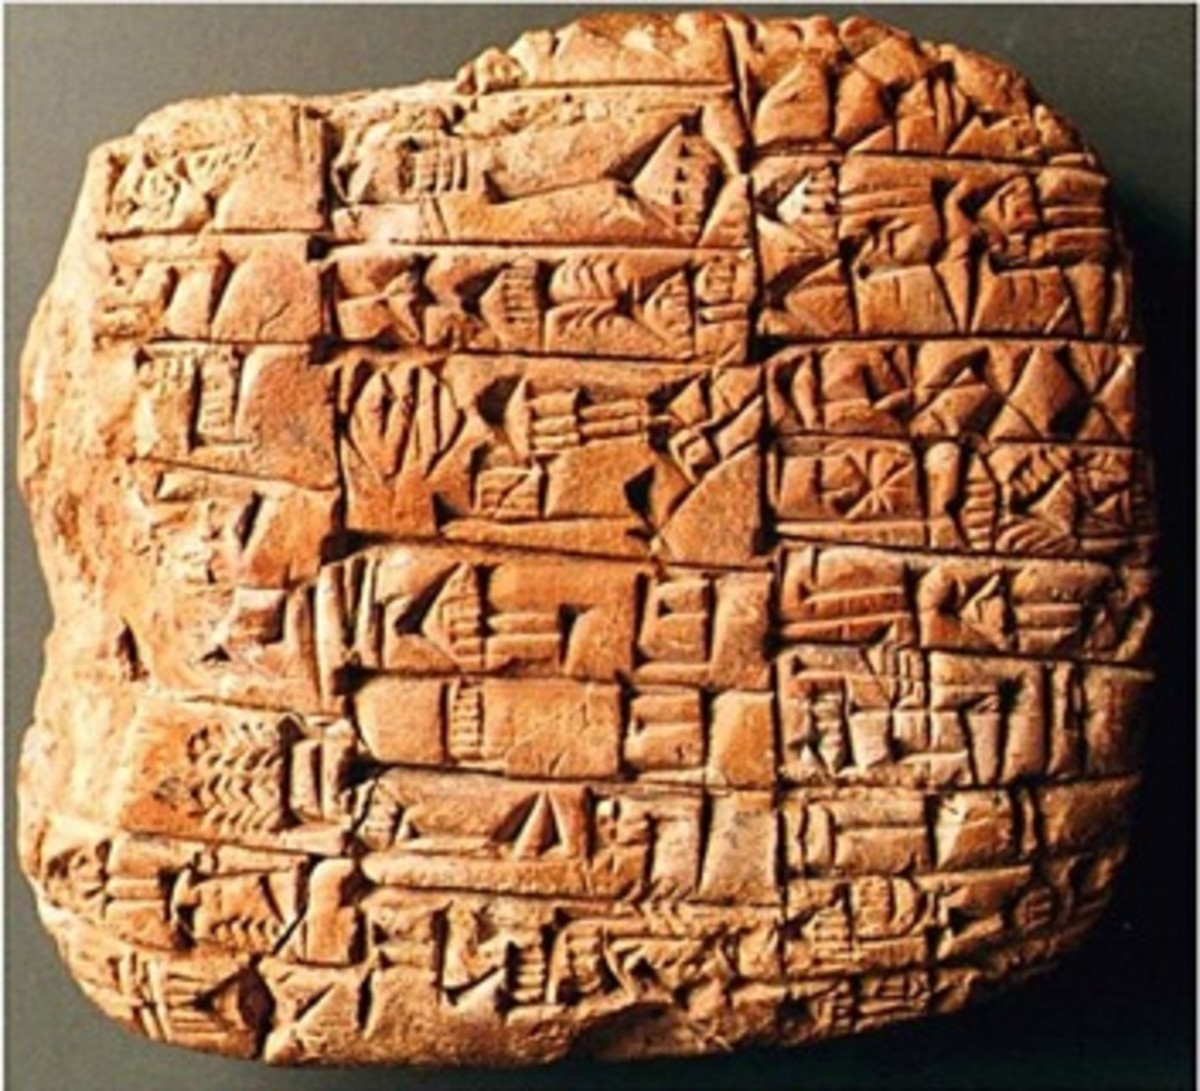 A fragment of a clay tablet depicting the story of Gilgamesh and the Bull of Heaven.